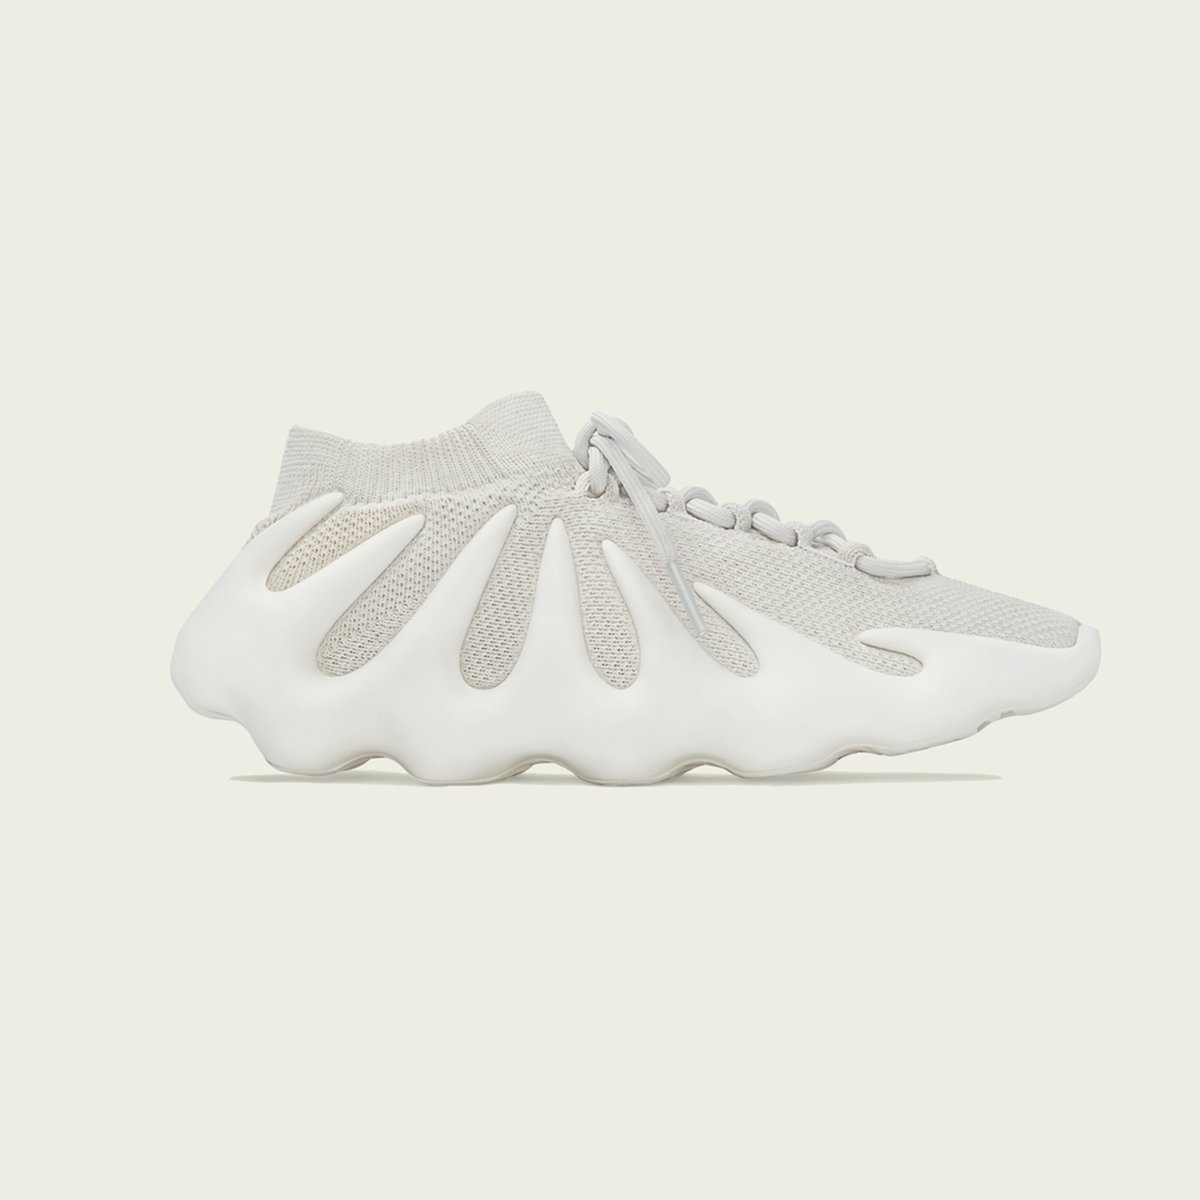 SNS online raffle live for the adidas Yeezy 450